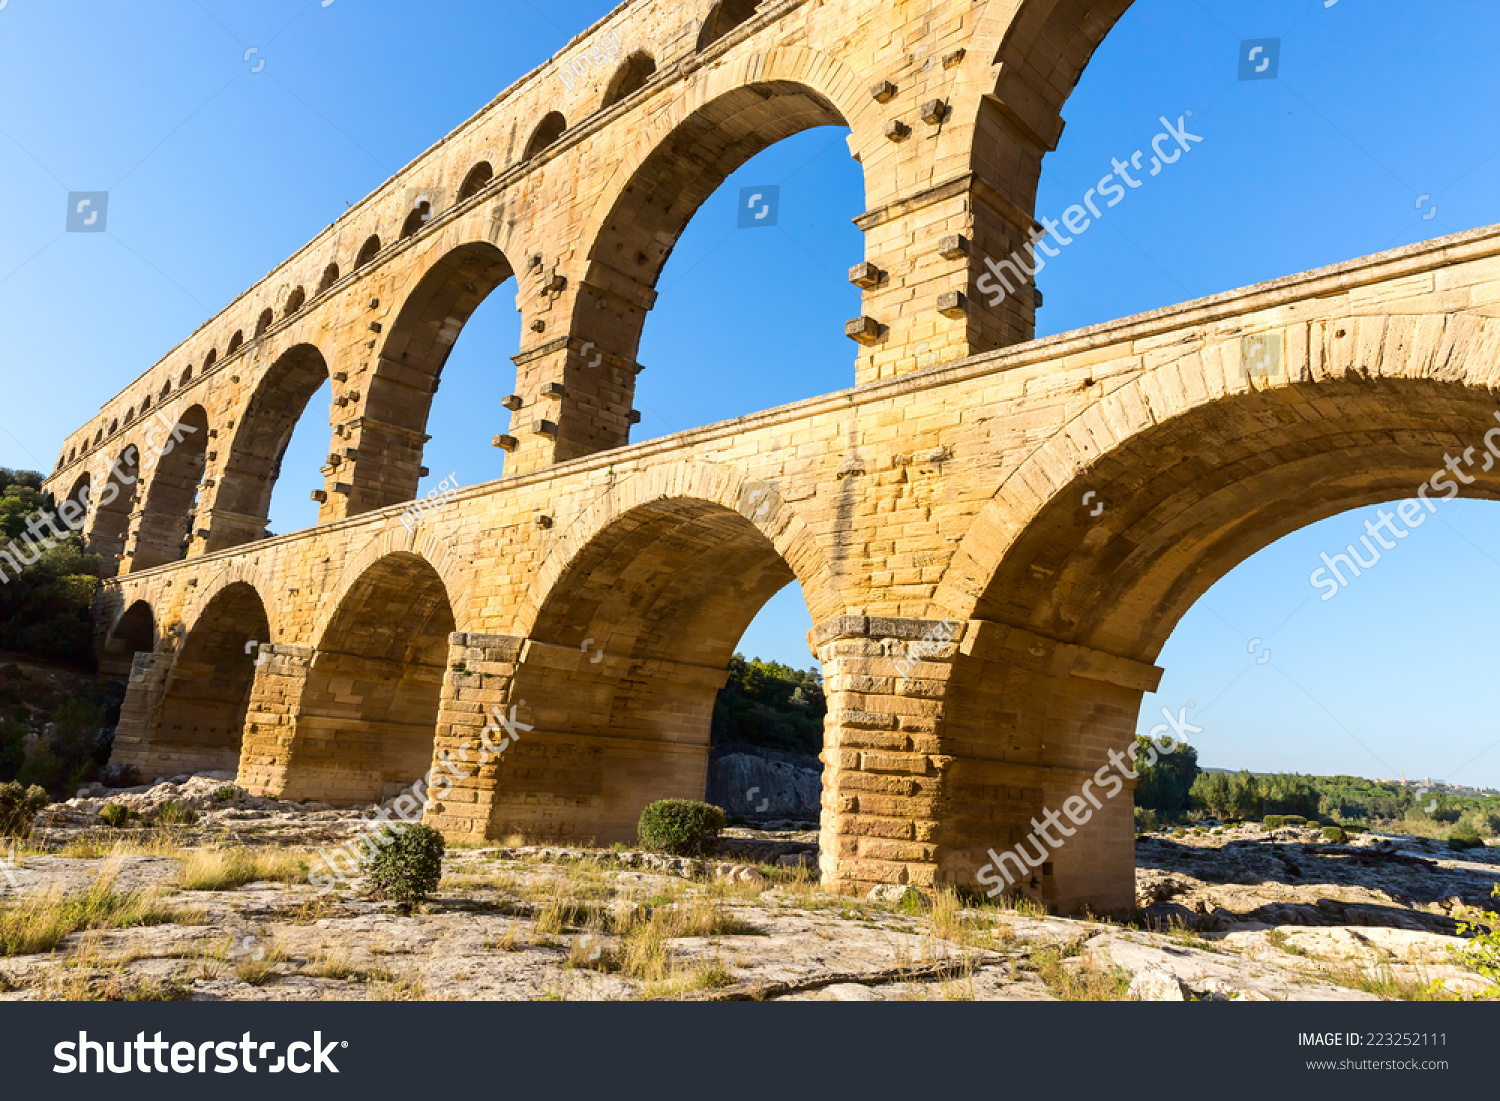 How Old Is The Aqueduct At Nimes 15